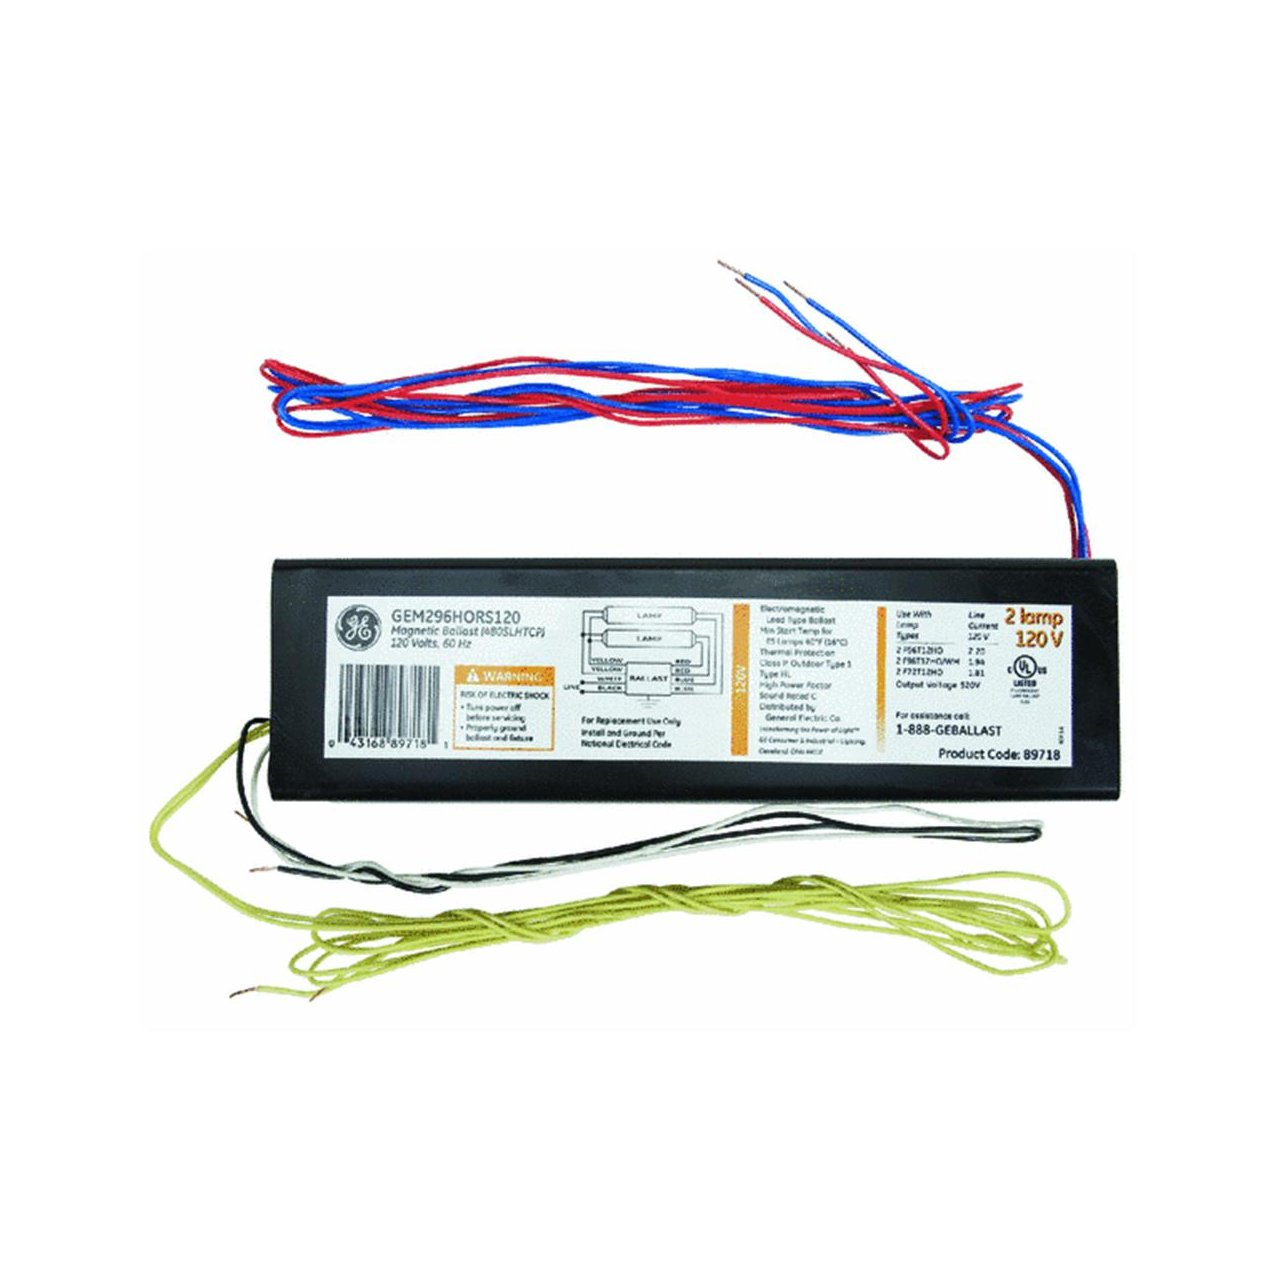 Ge 97499 Ge240rs120 Diy Lfl Proline Electronic Program Rapid Start Ballast Wiring Diagram For 2 F40 Or F34t12 Home Improvement